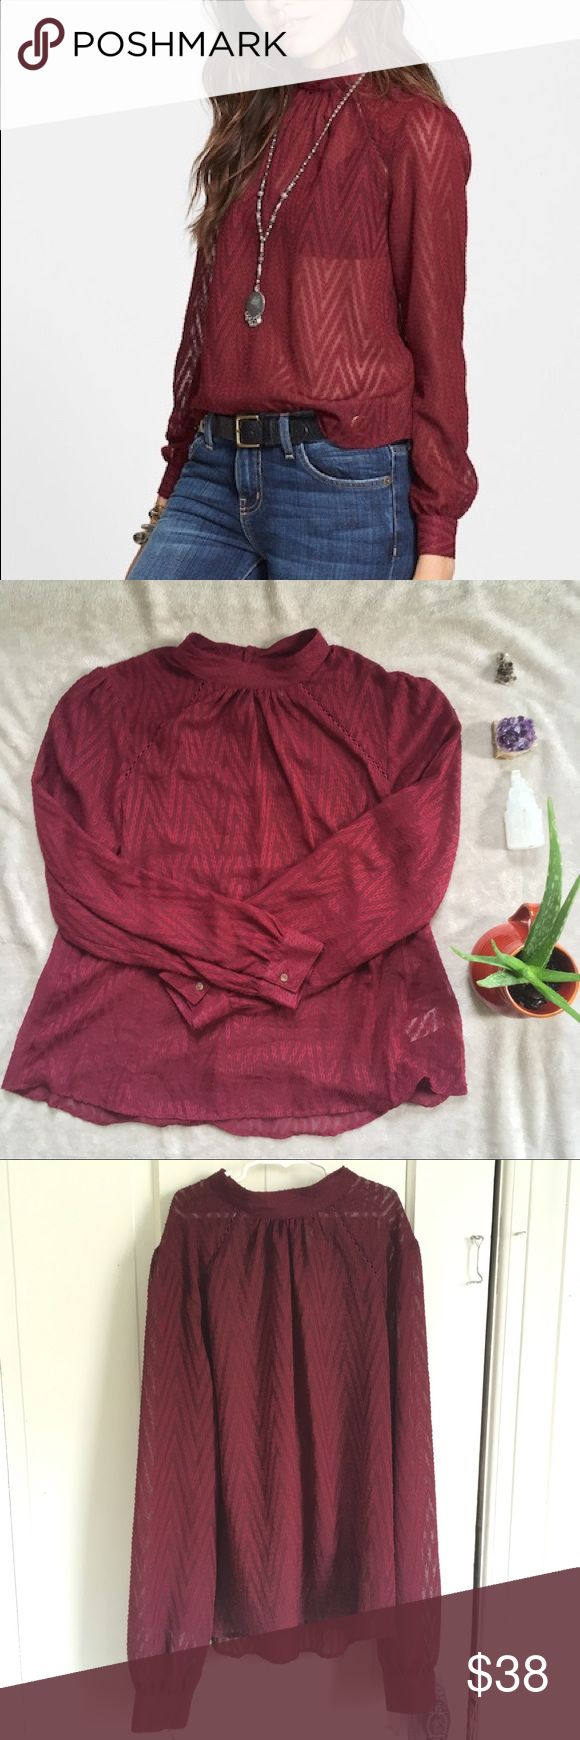 Free People Sheer Chevron Blouse NWOT. sold out in stores. The sheer design of this blouse makes it perfect for flirty layered styling. Mock neck, long sleeves with barrel cuffs, back button closure, textured throughout. Free People Tops Blouses